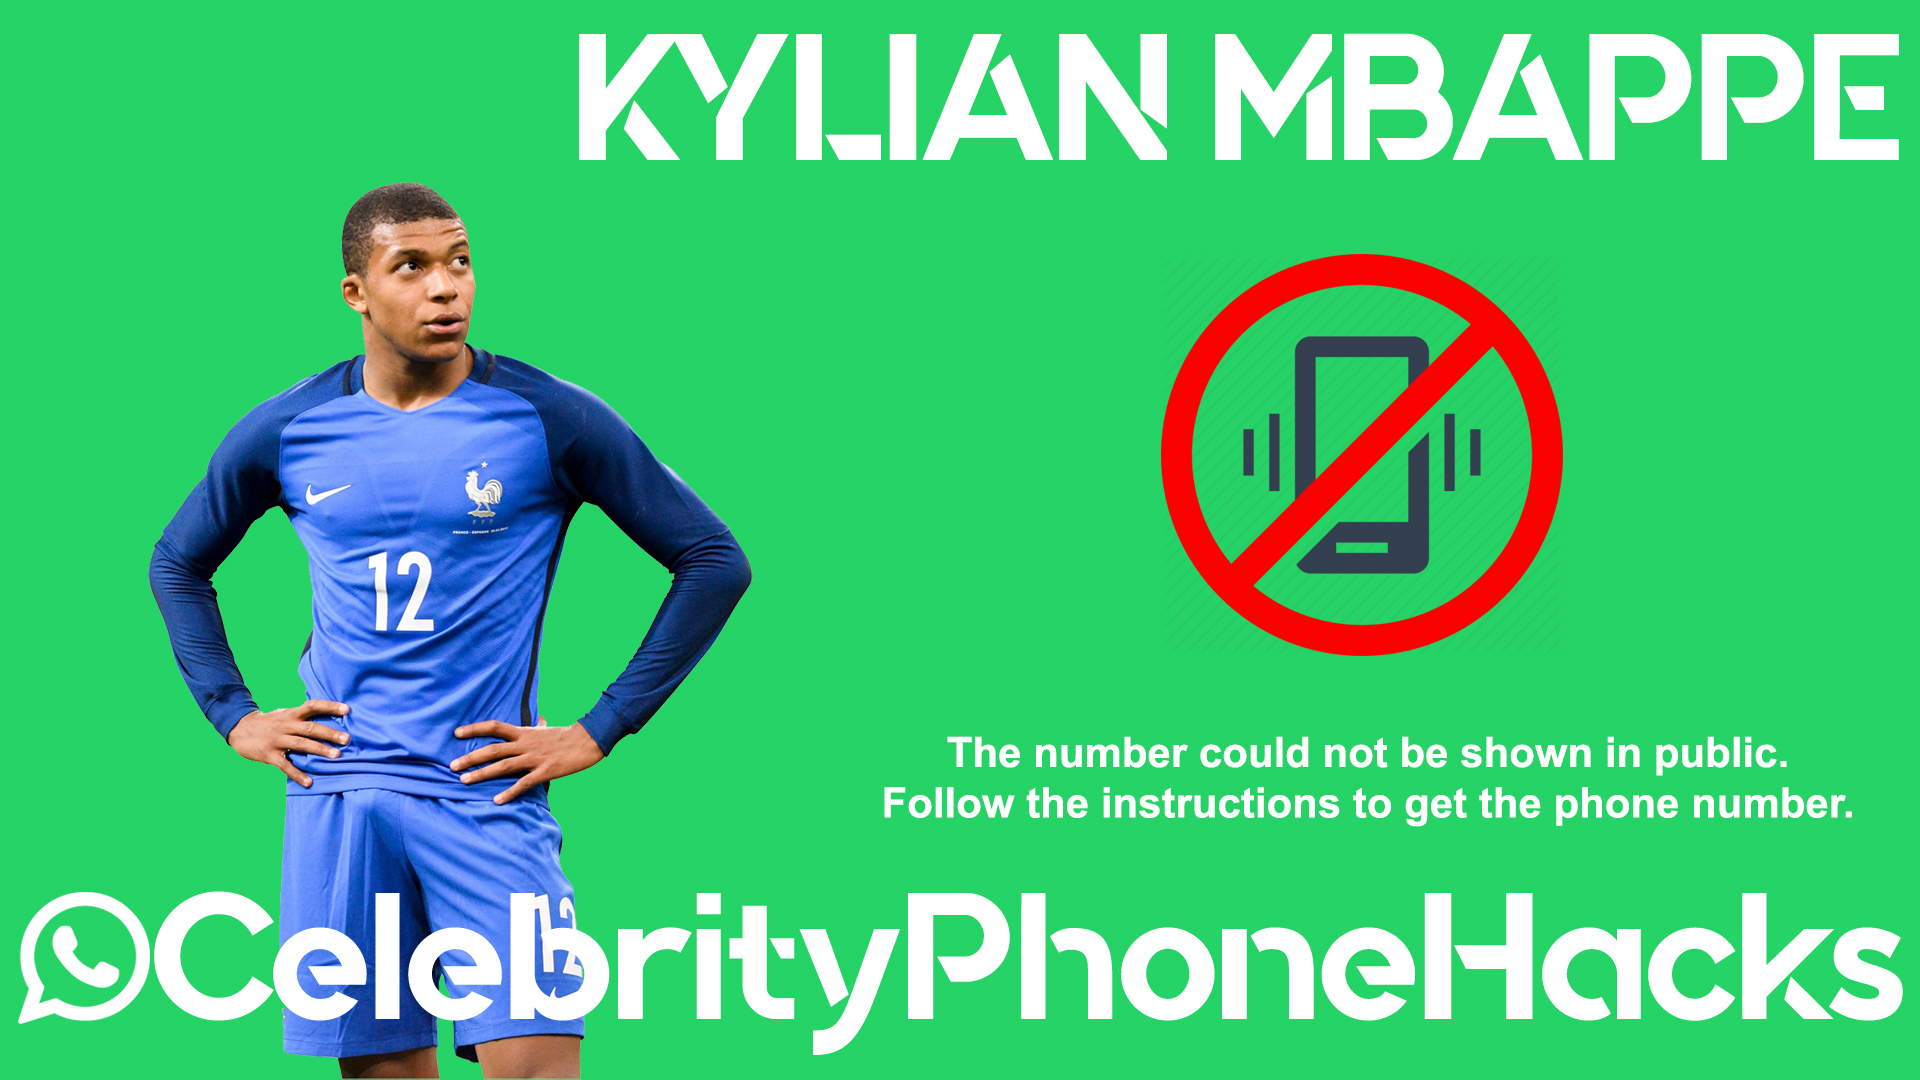 Kylian Mbappe real phone number 2019 whatsapp hacked leaked